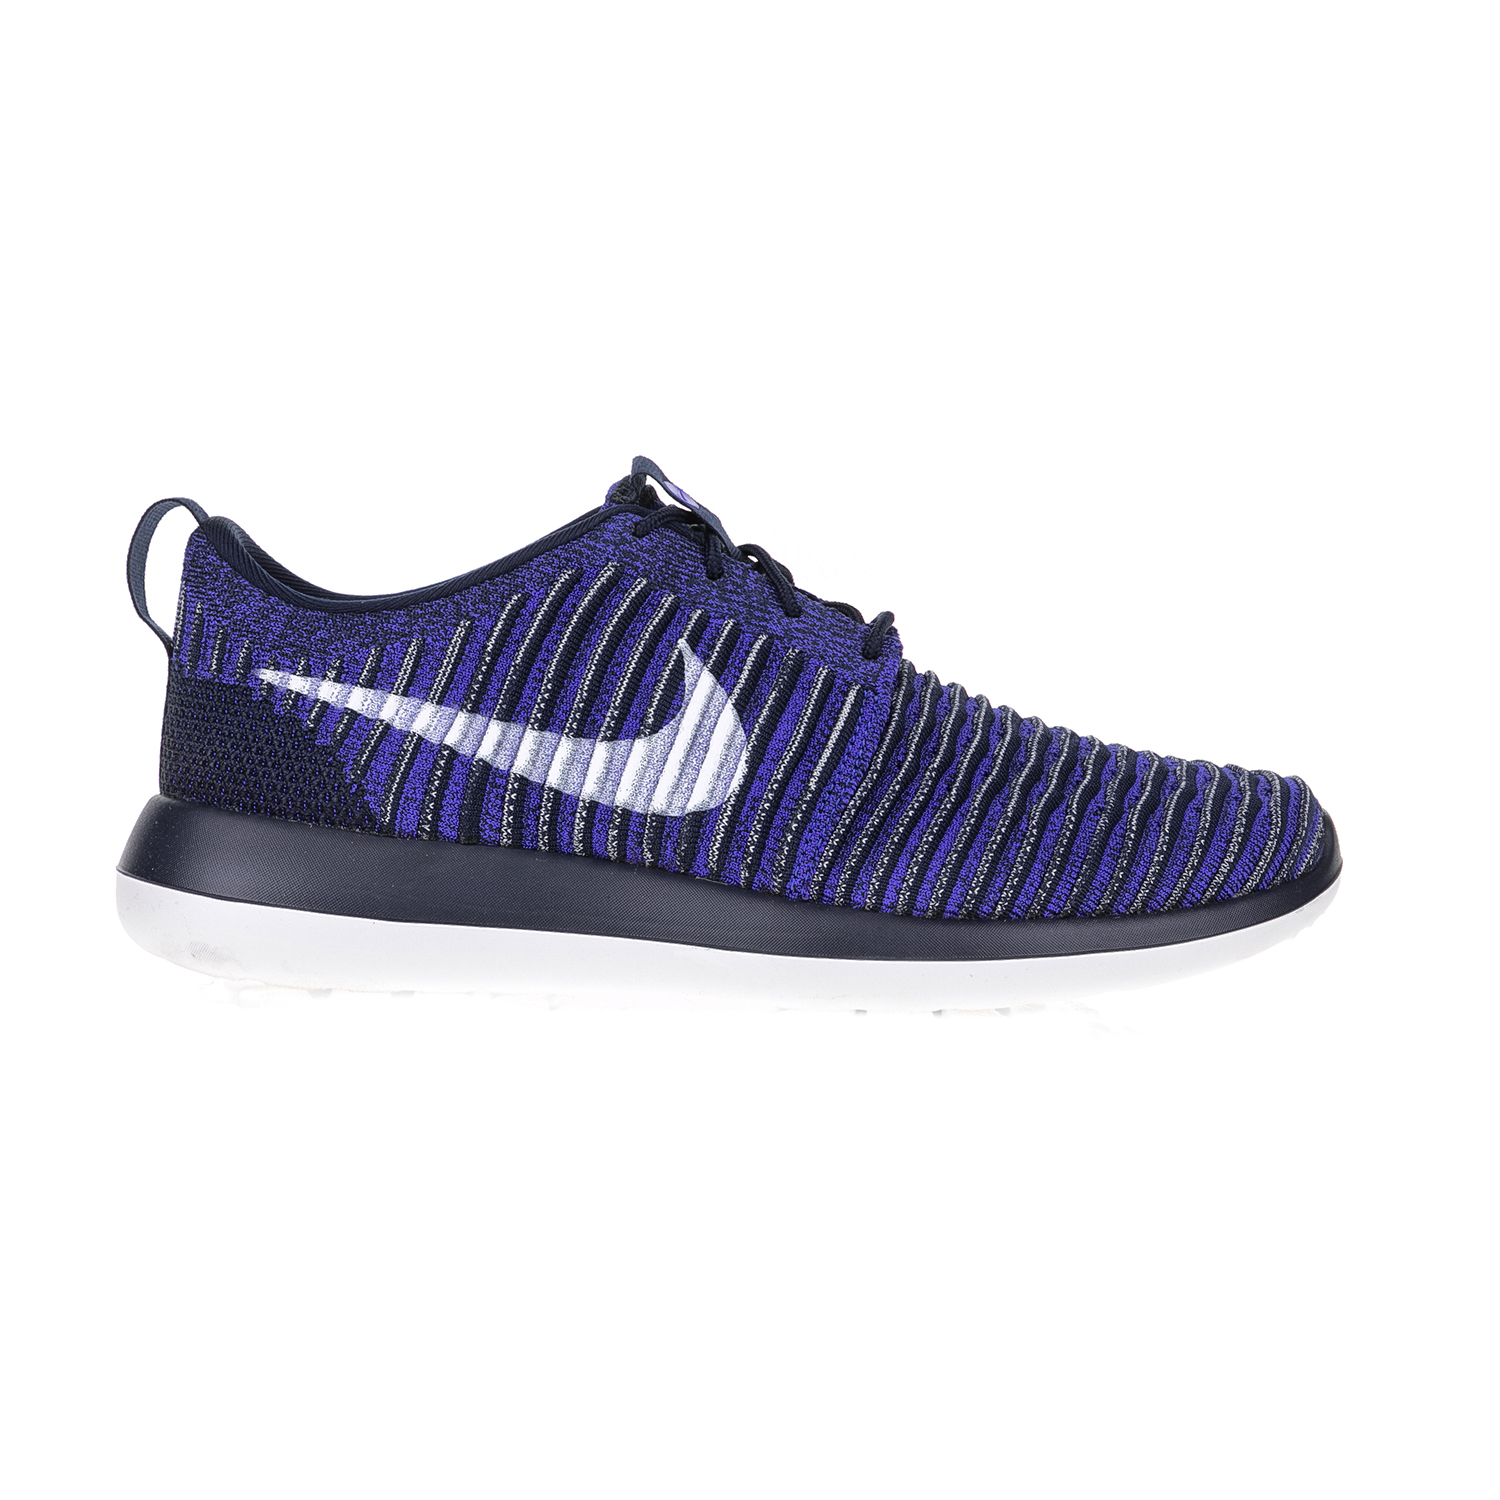 NIKE – Ανδρικά αθλητικά παπούτσια NIKE ROSHE TWO FLYKNIT μπλε-μαύρα